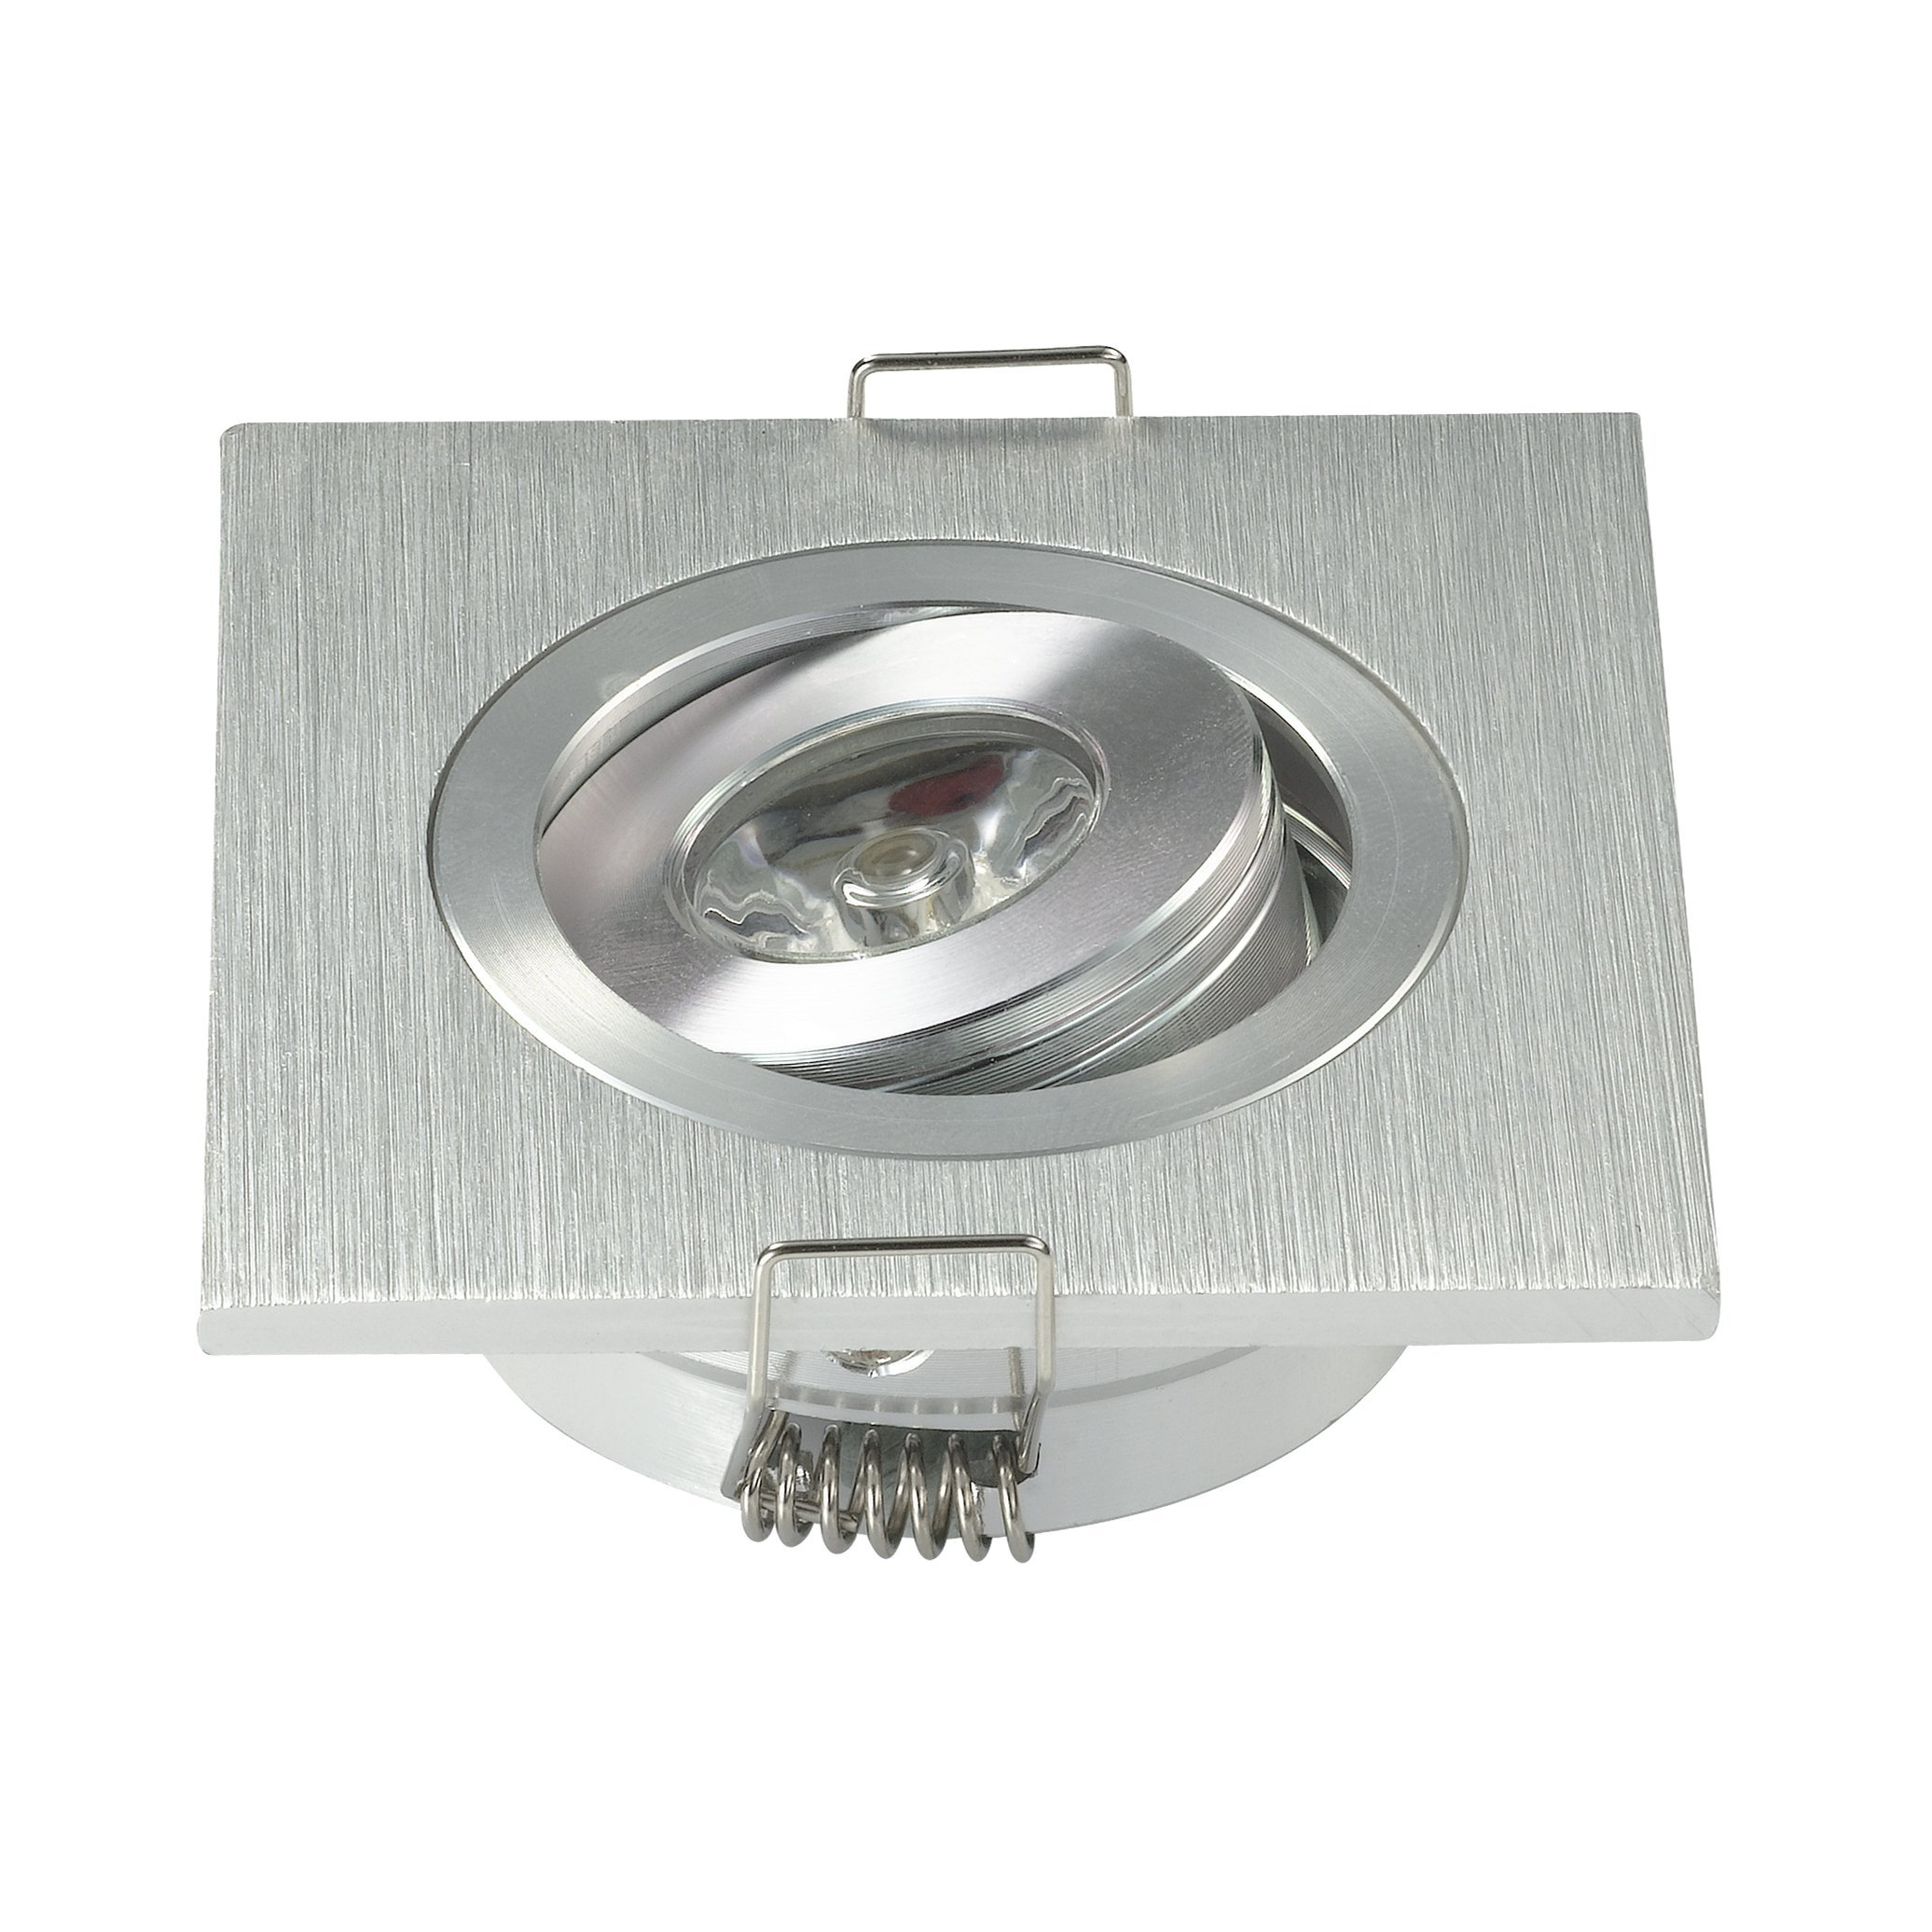 Pack of 10 Mini 3W High Power LED Recessed Ceiling Down Light Lamps LED Downlights for Living Room Cabinet Bedroom